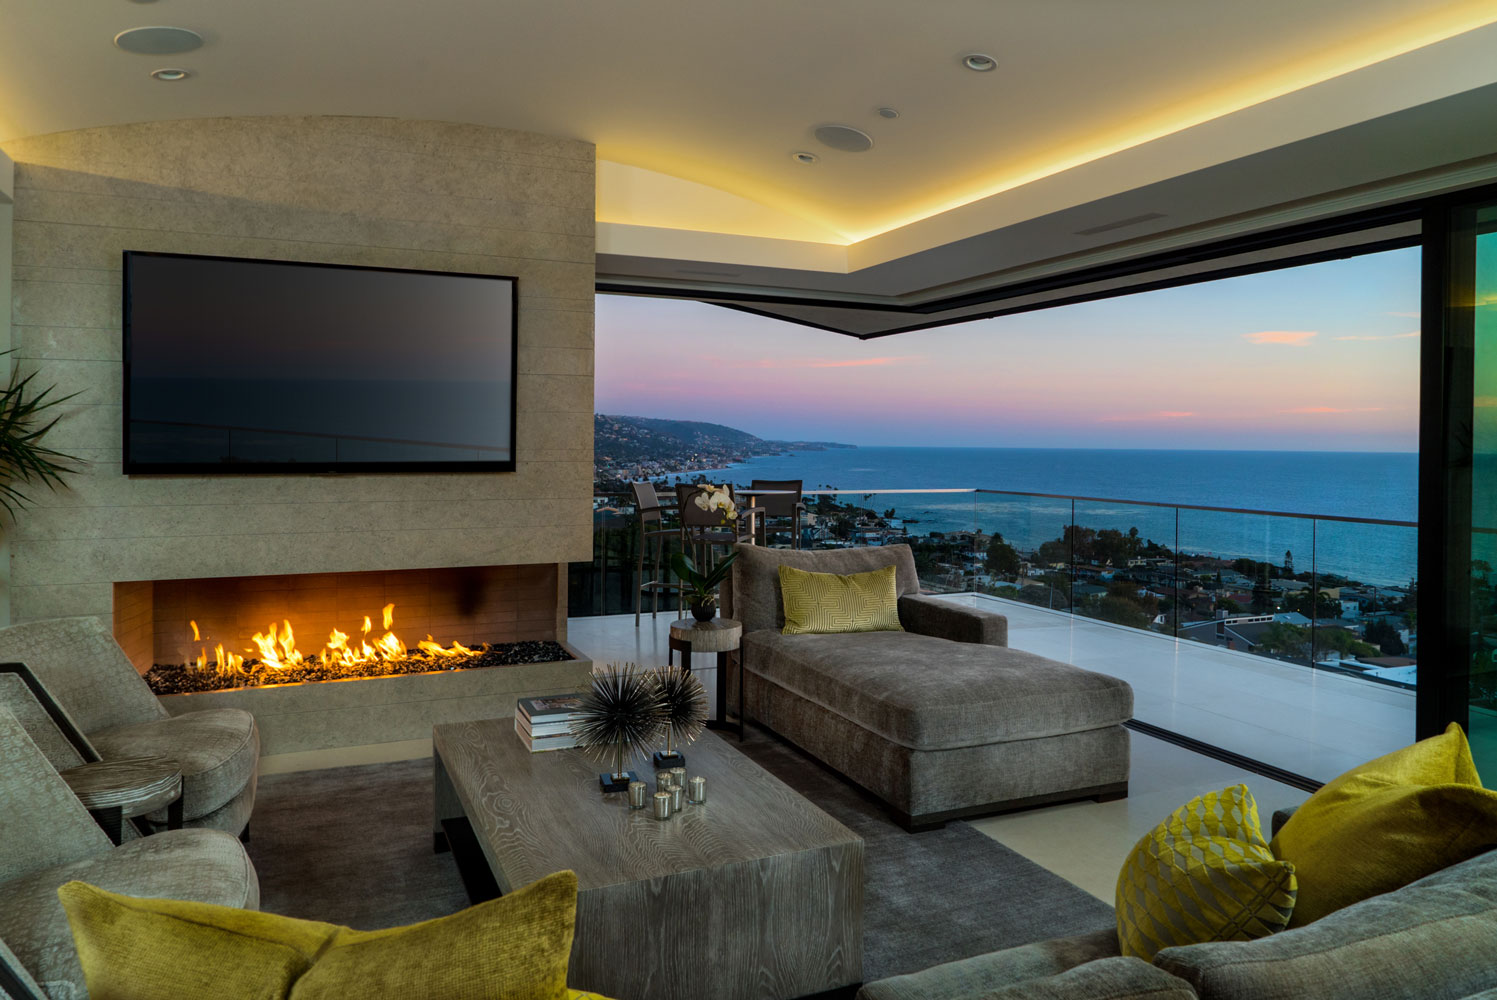 Contemporary-Living-Room-Fireplace-Retractable-Doors-Ocean-Views-Corbin-Reeves.jpg